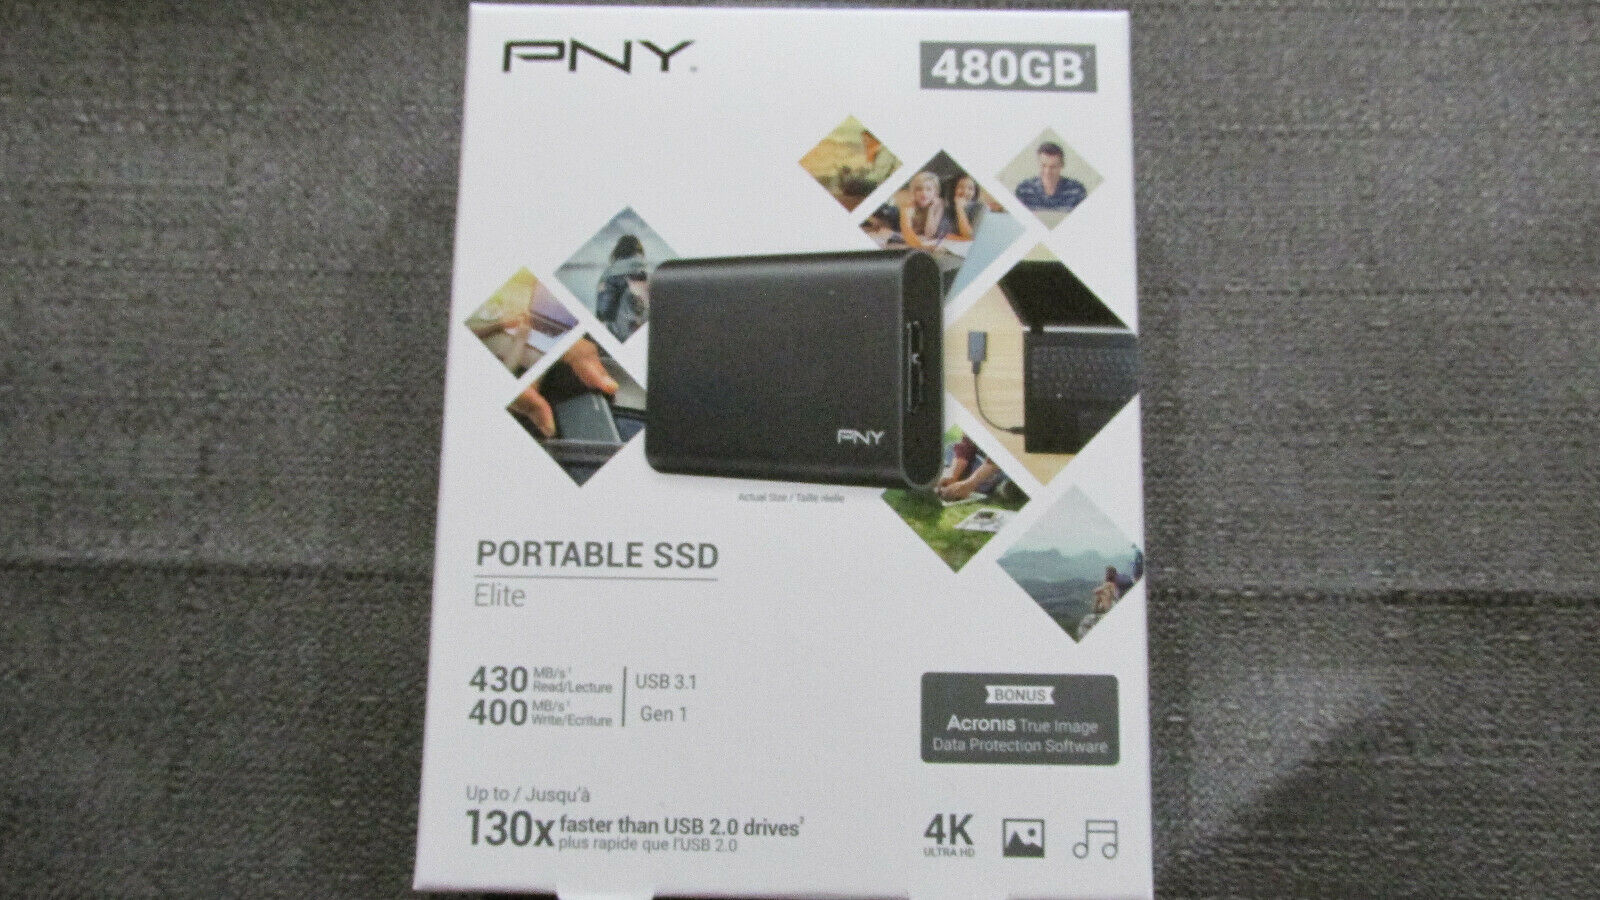 PNY Portable SSD Solid State External Drive Elite 480GB USB 3.1  New Sealed. Buy it now for 39.50